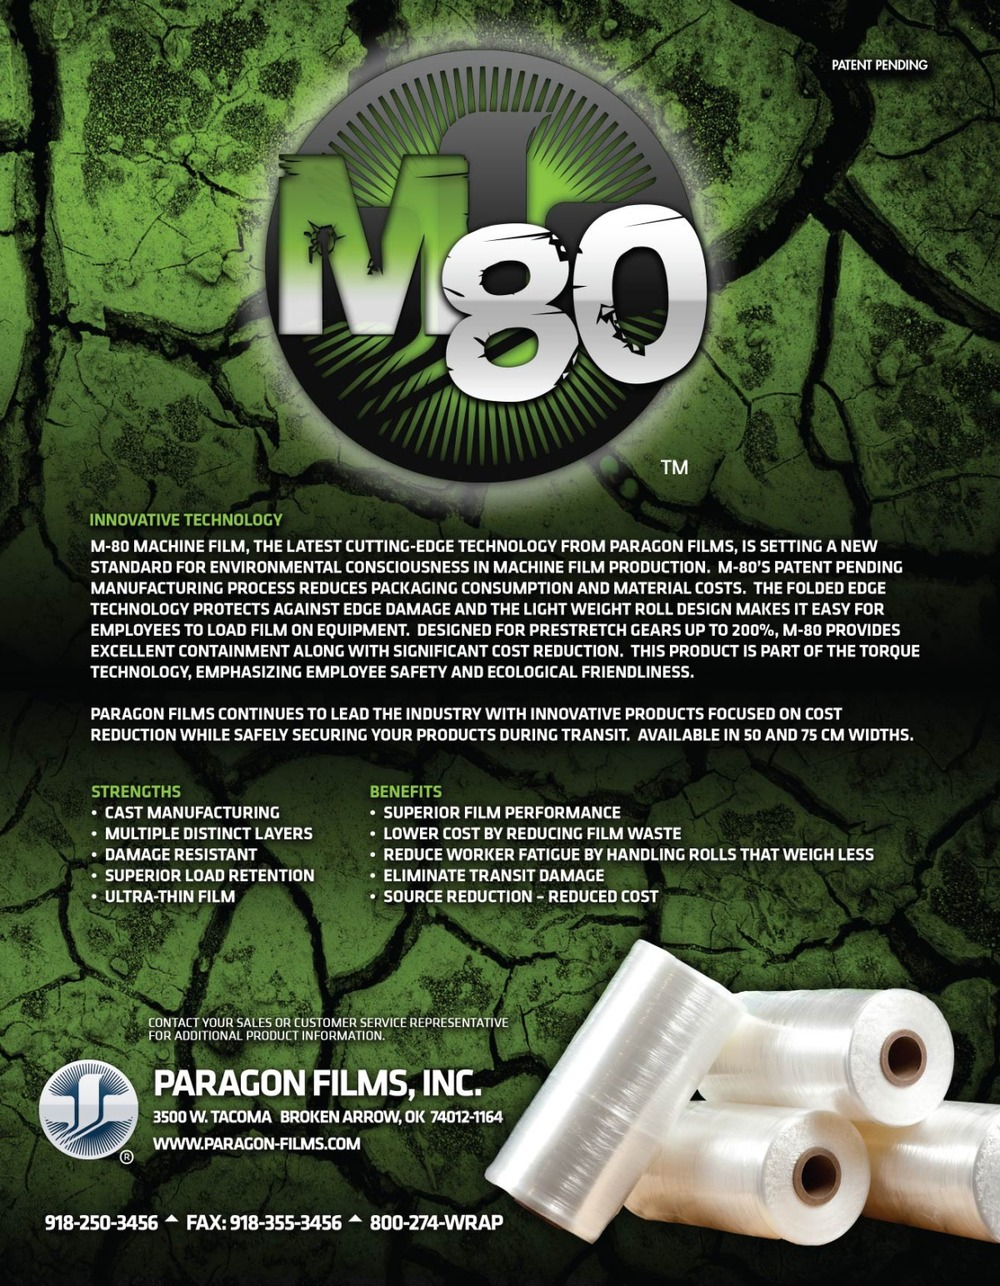 paragon films flyer.jpg